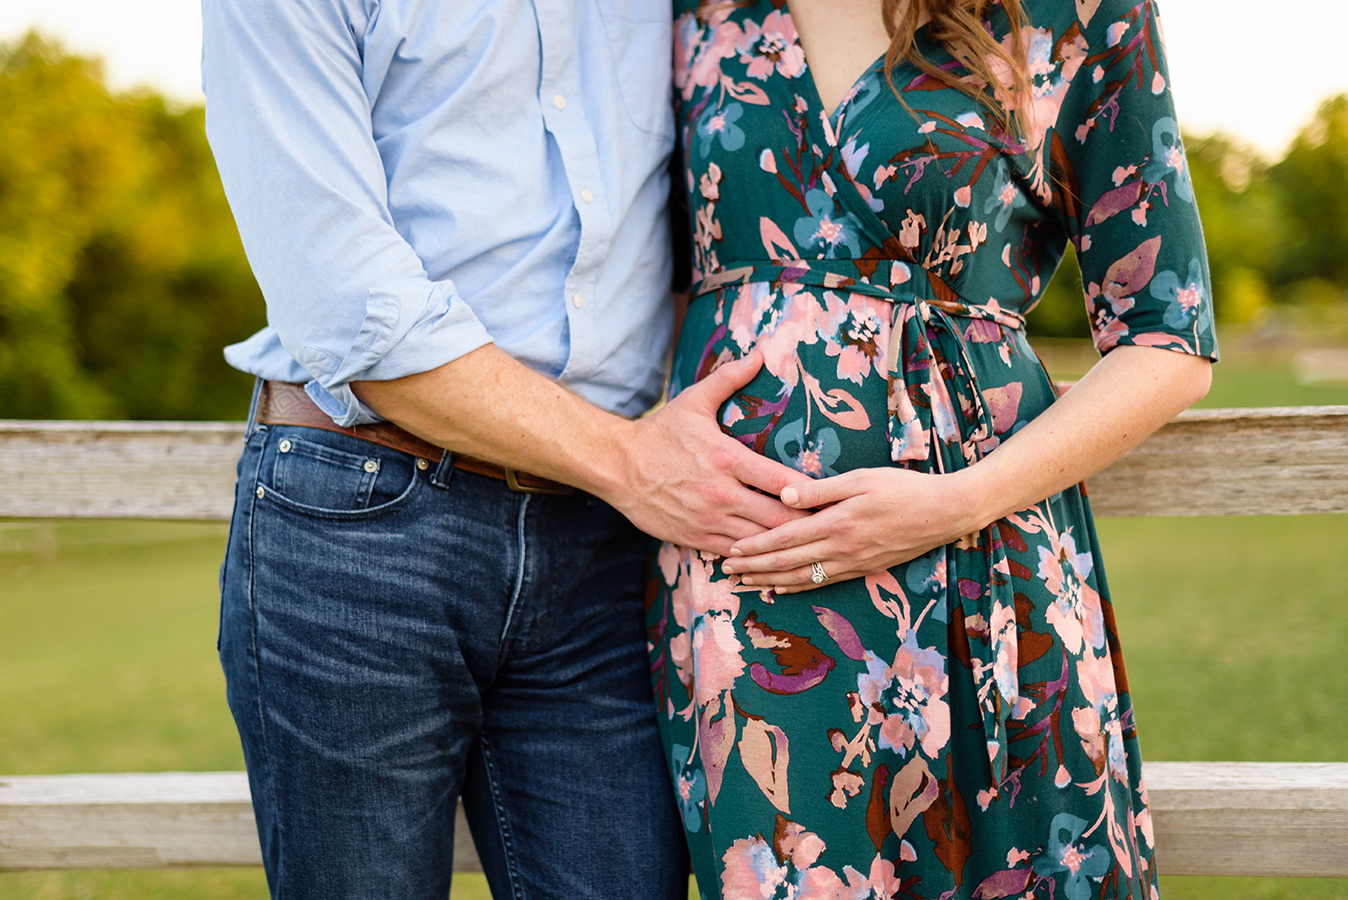 maternity-pregnancy-reveal-photo-session-photography-dallas-plano-north-texas-richardson-allen-mckinney-frisco-addison-web-B-8.jpg